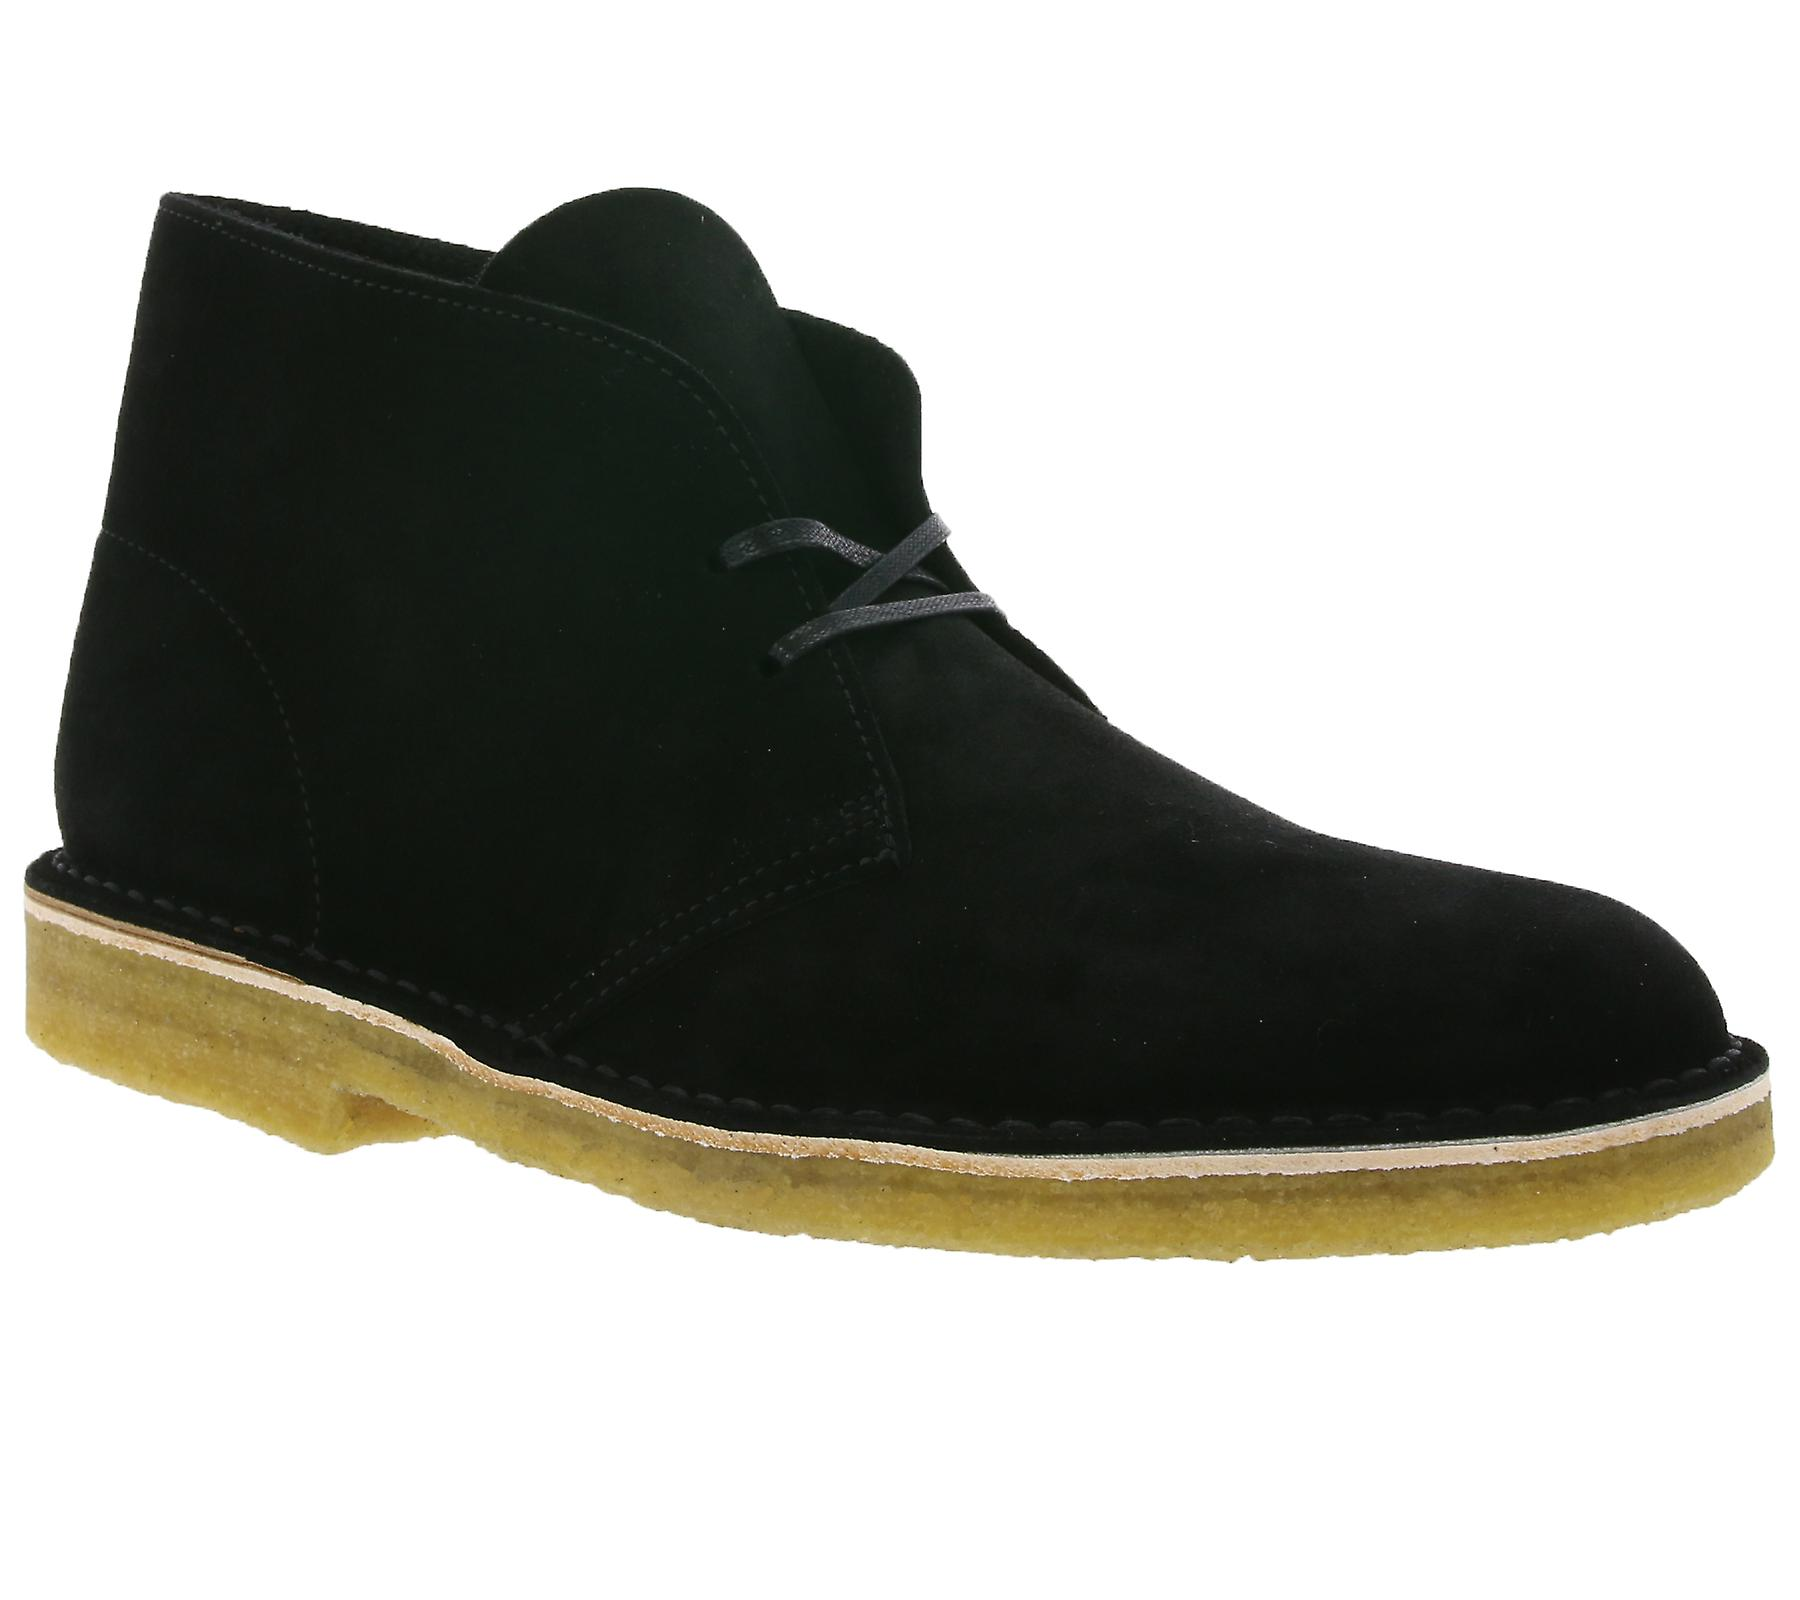 Clarks desert boot shoes men's genuine leather shoes boot black 26128537 be02c7